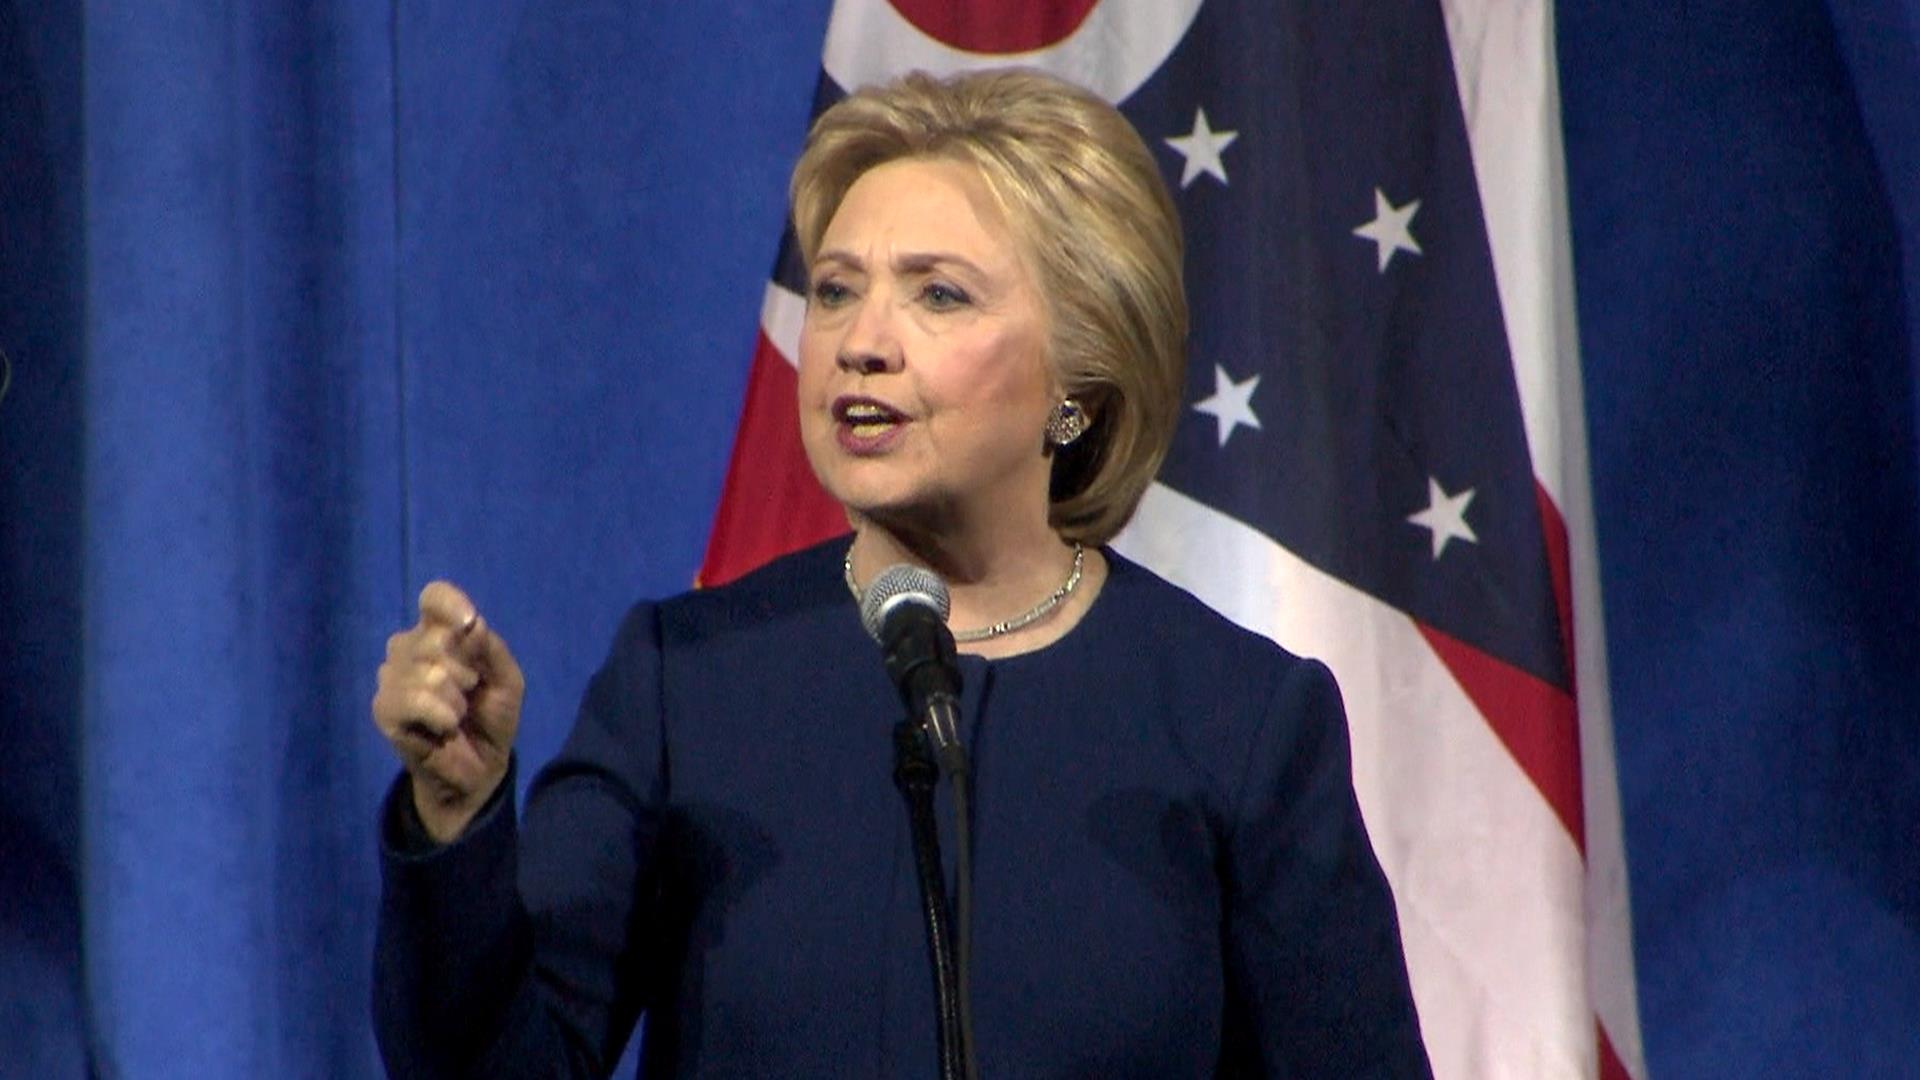 Can Hillary Clinton secure the nomination Tuesday? - TODAY.com